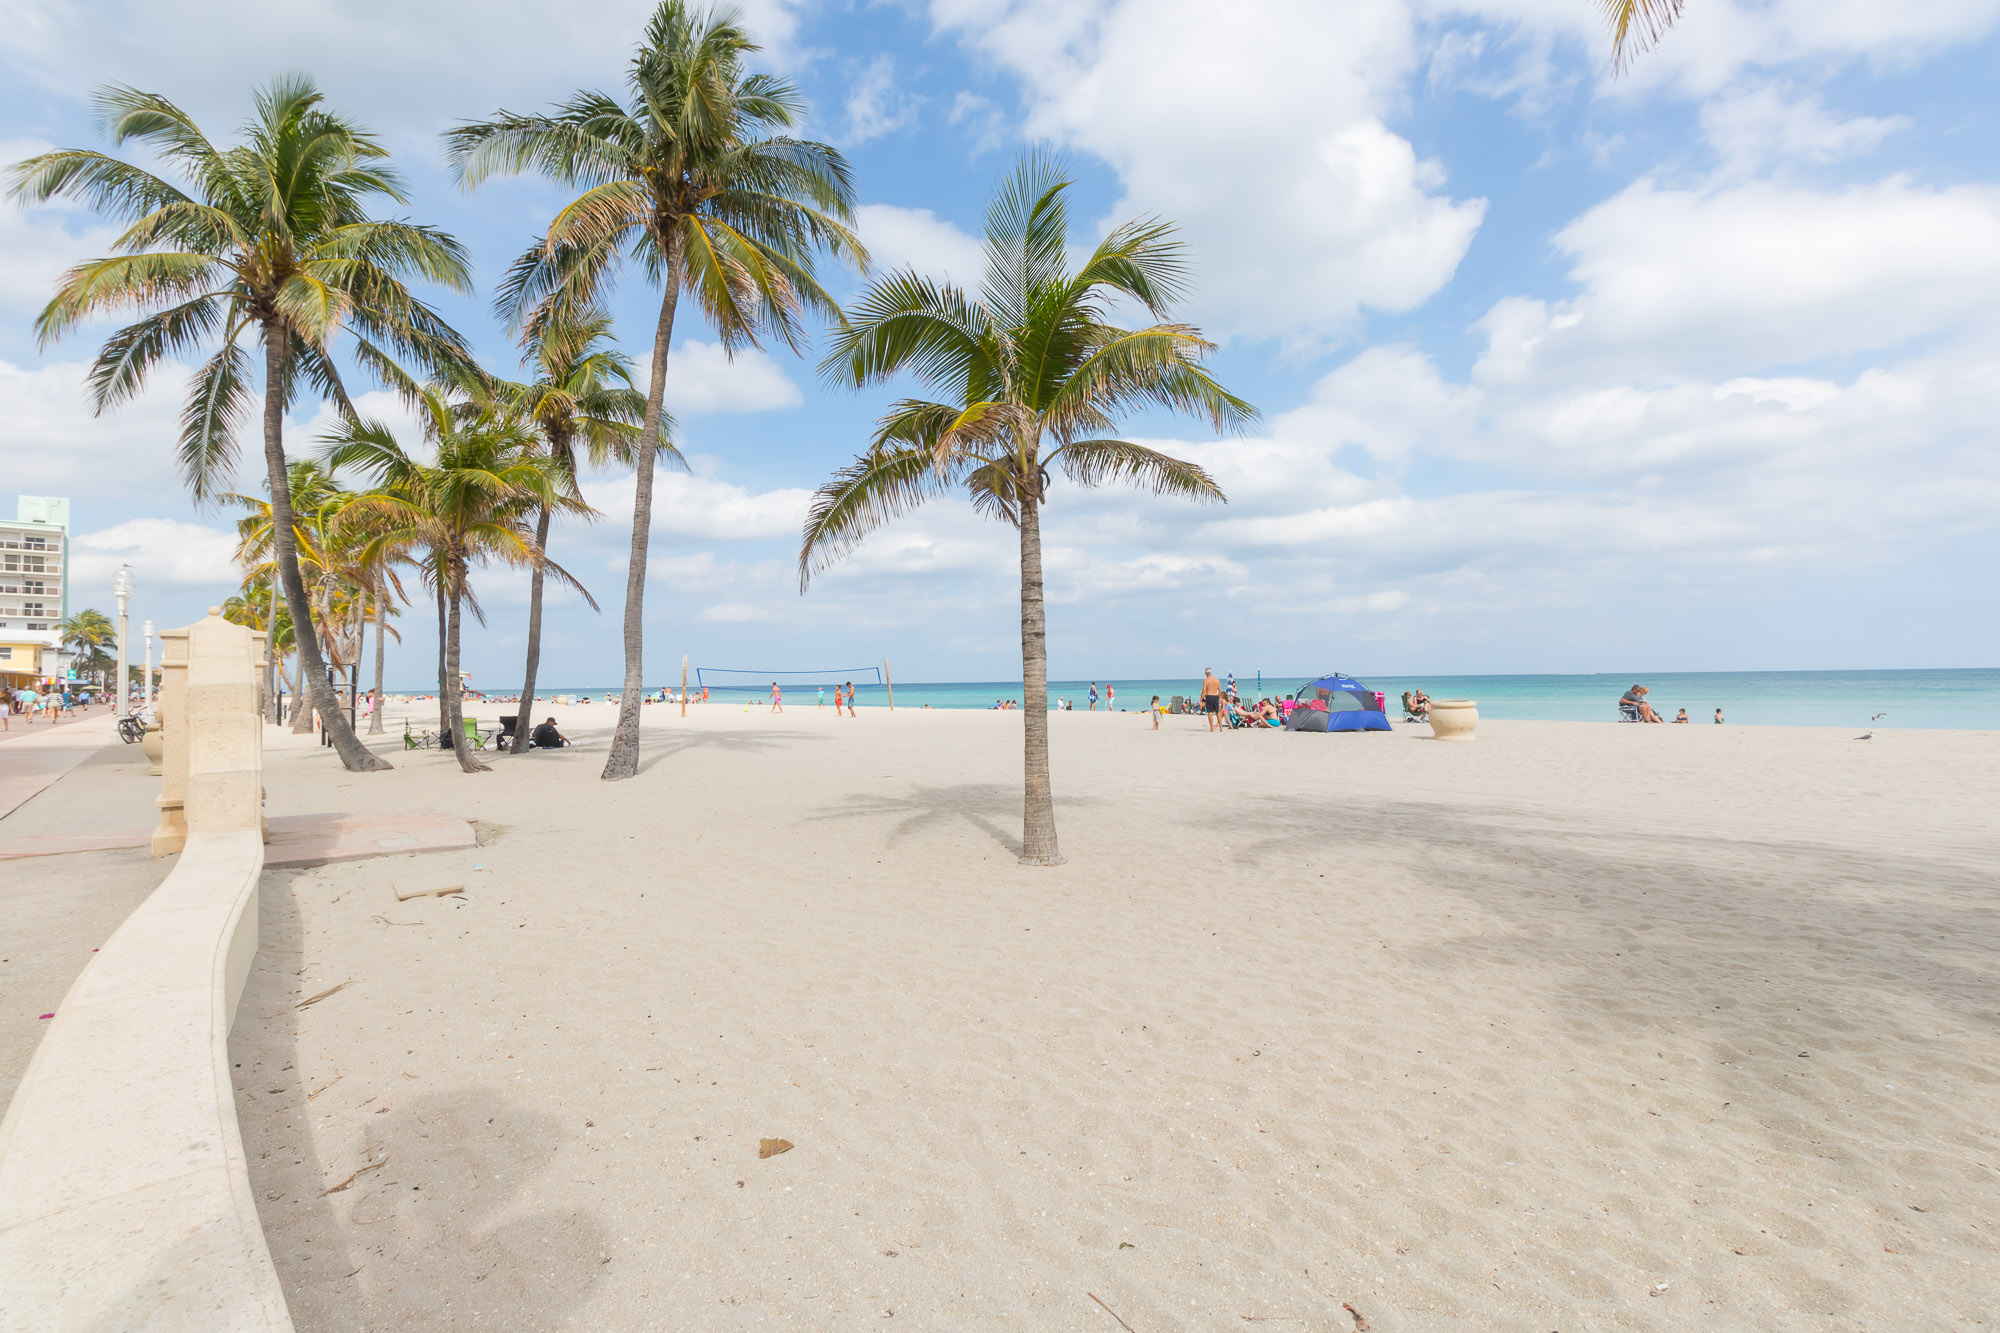 567 City View Studio Hollywood Beach photo 18624063